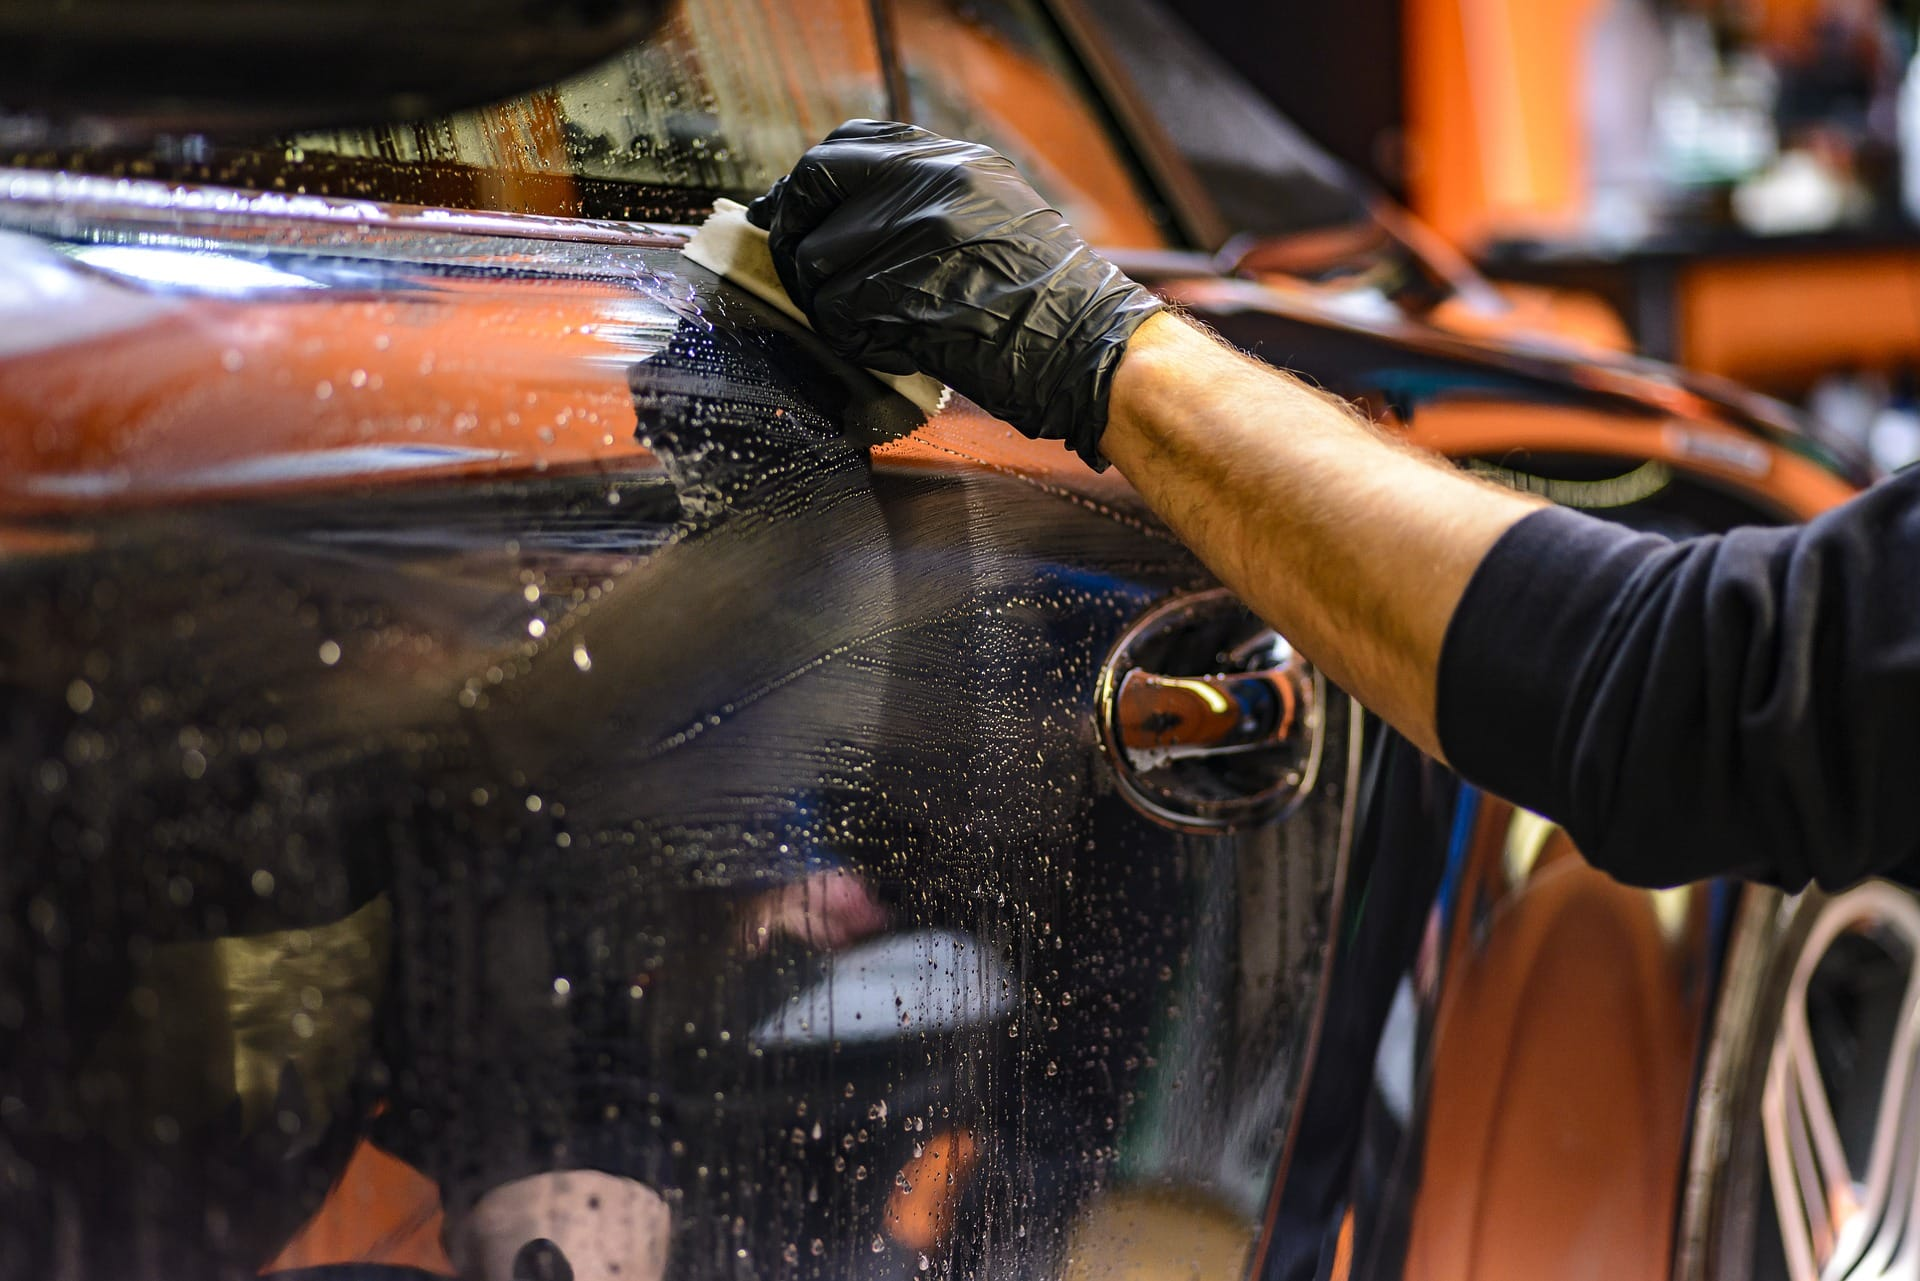 Clean Your Car's Scratches and Dents